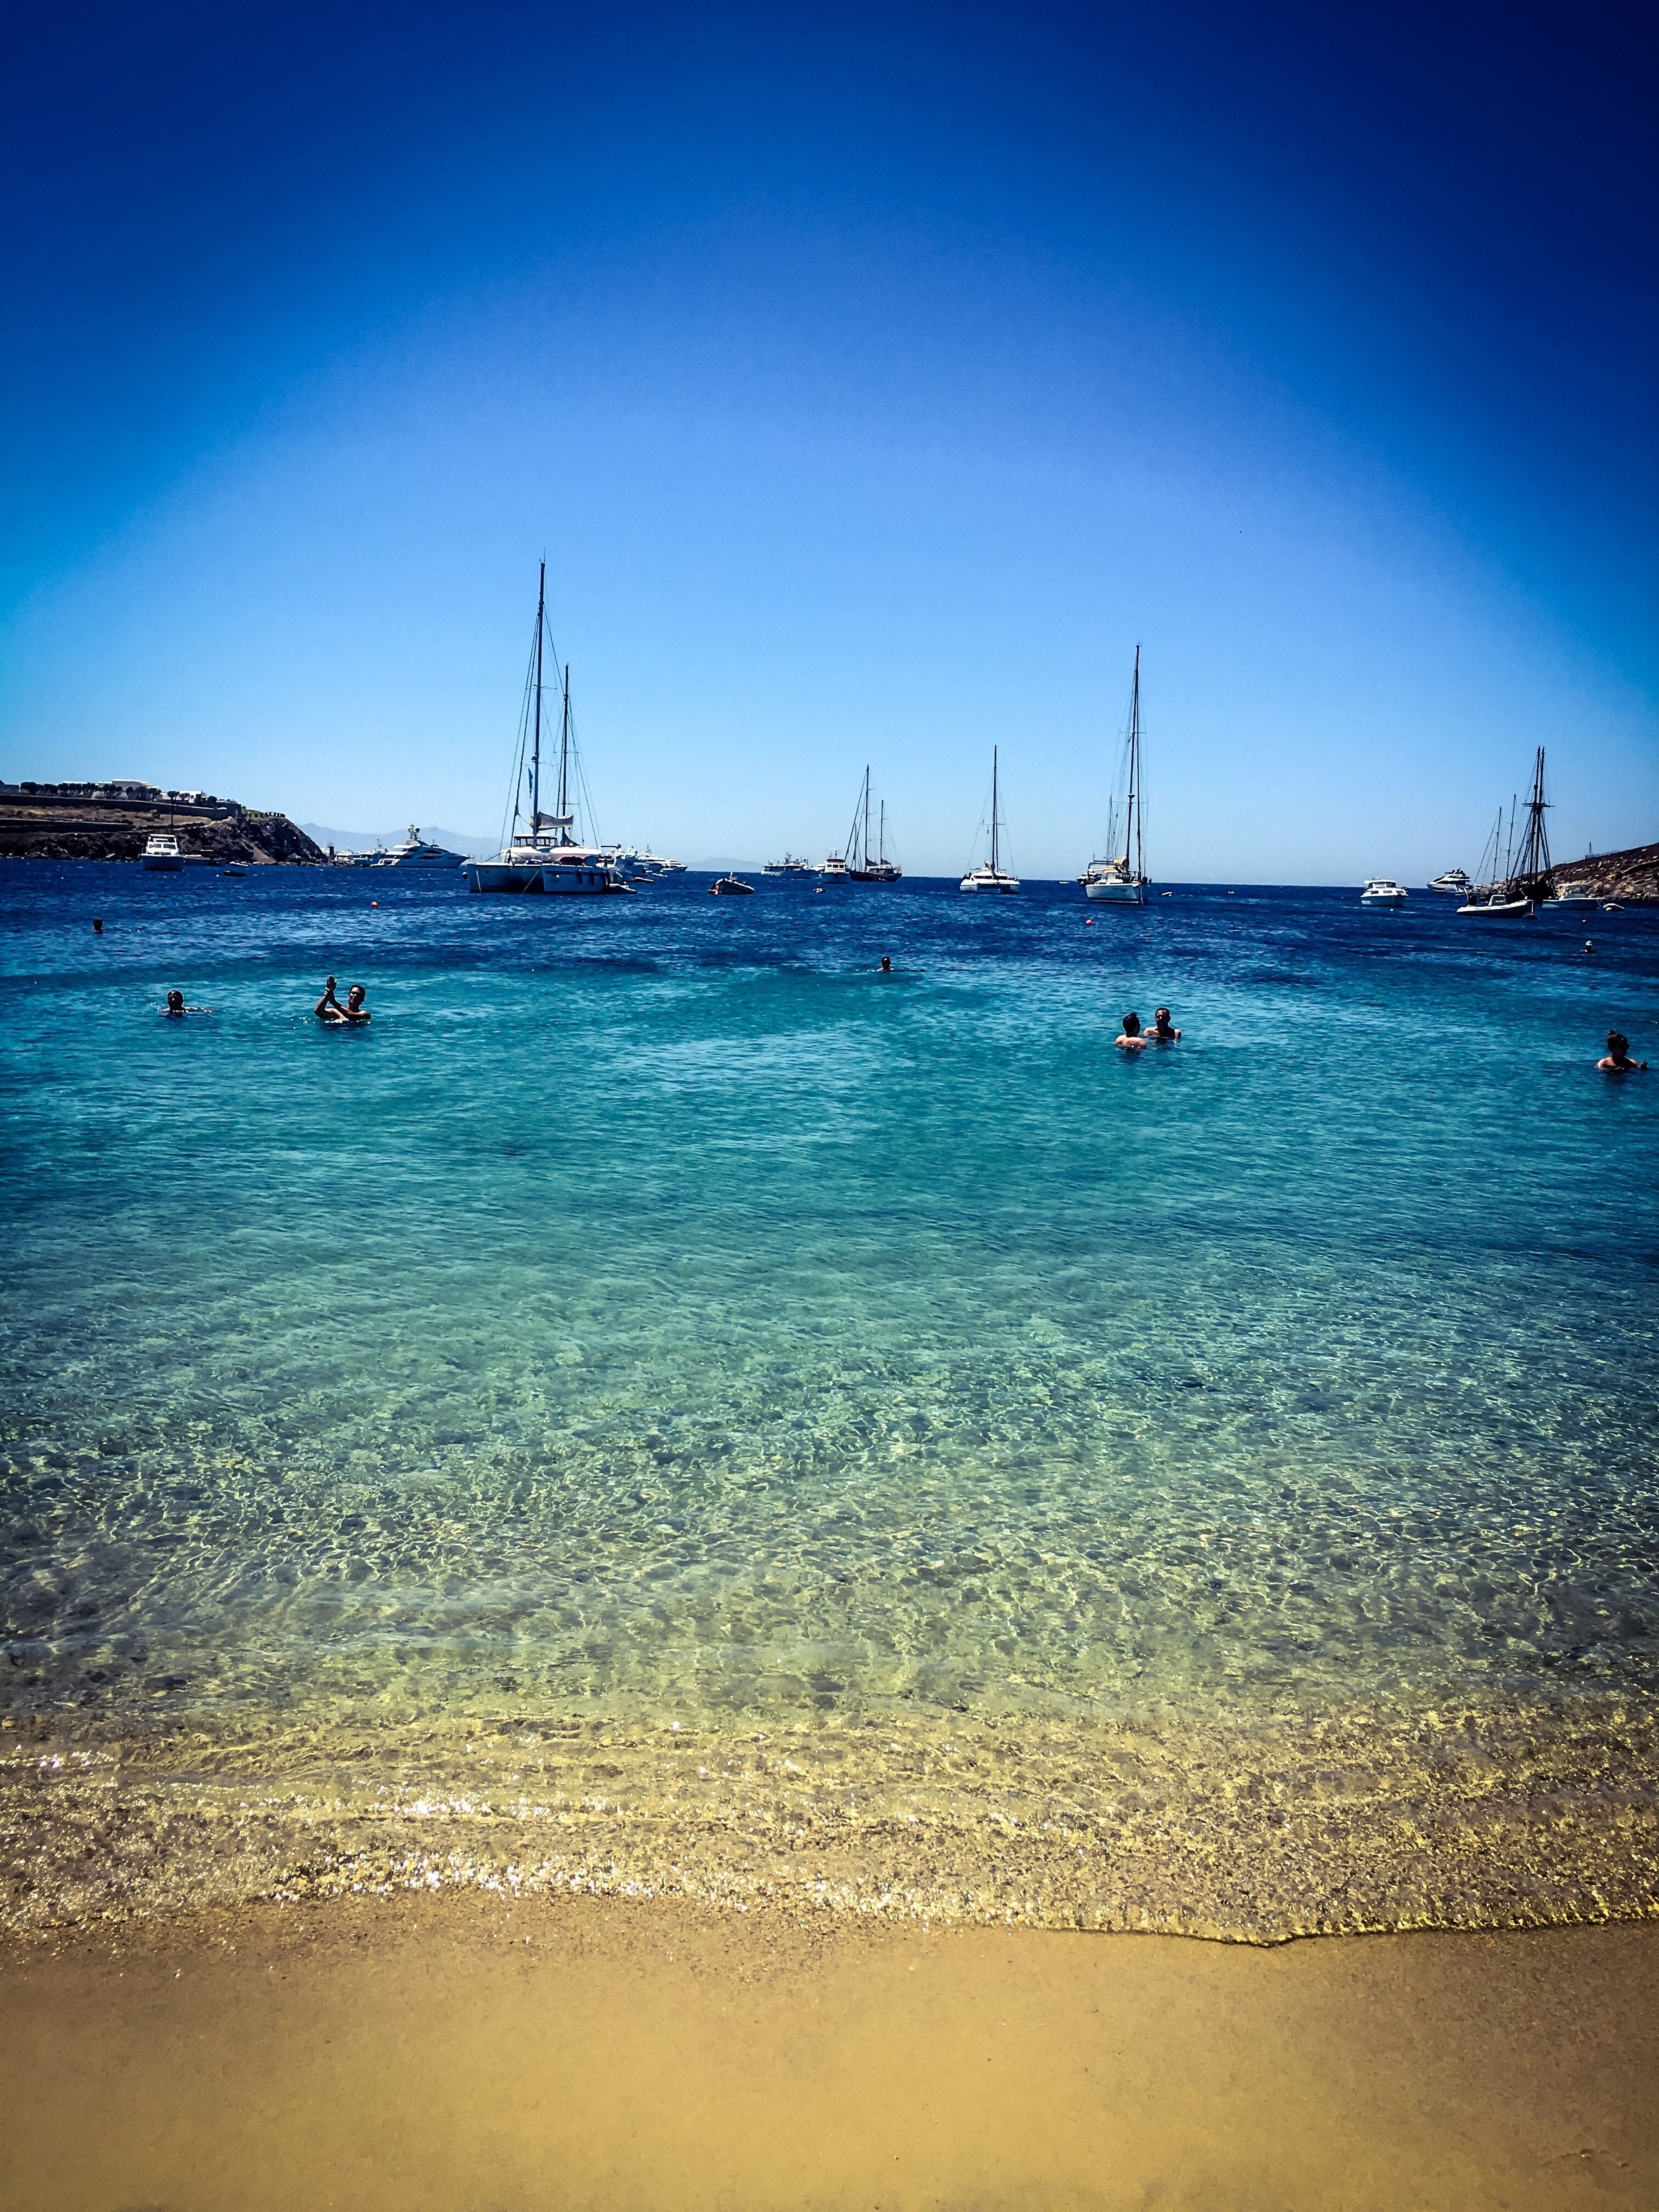 Aegean Sea Cyclades Sea Nautical Vessel Blue Sailboat Outdoors Sand Beach No People Tranquility Scenics Beauty In Nature Nature Travel Destinations Travel Photography Islandlife